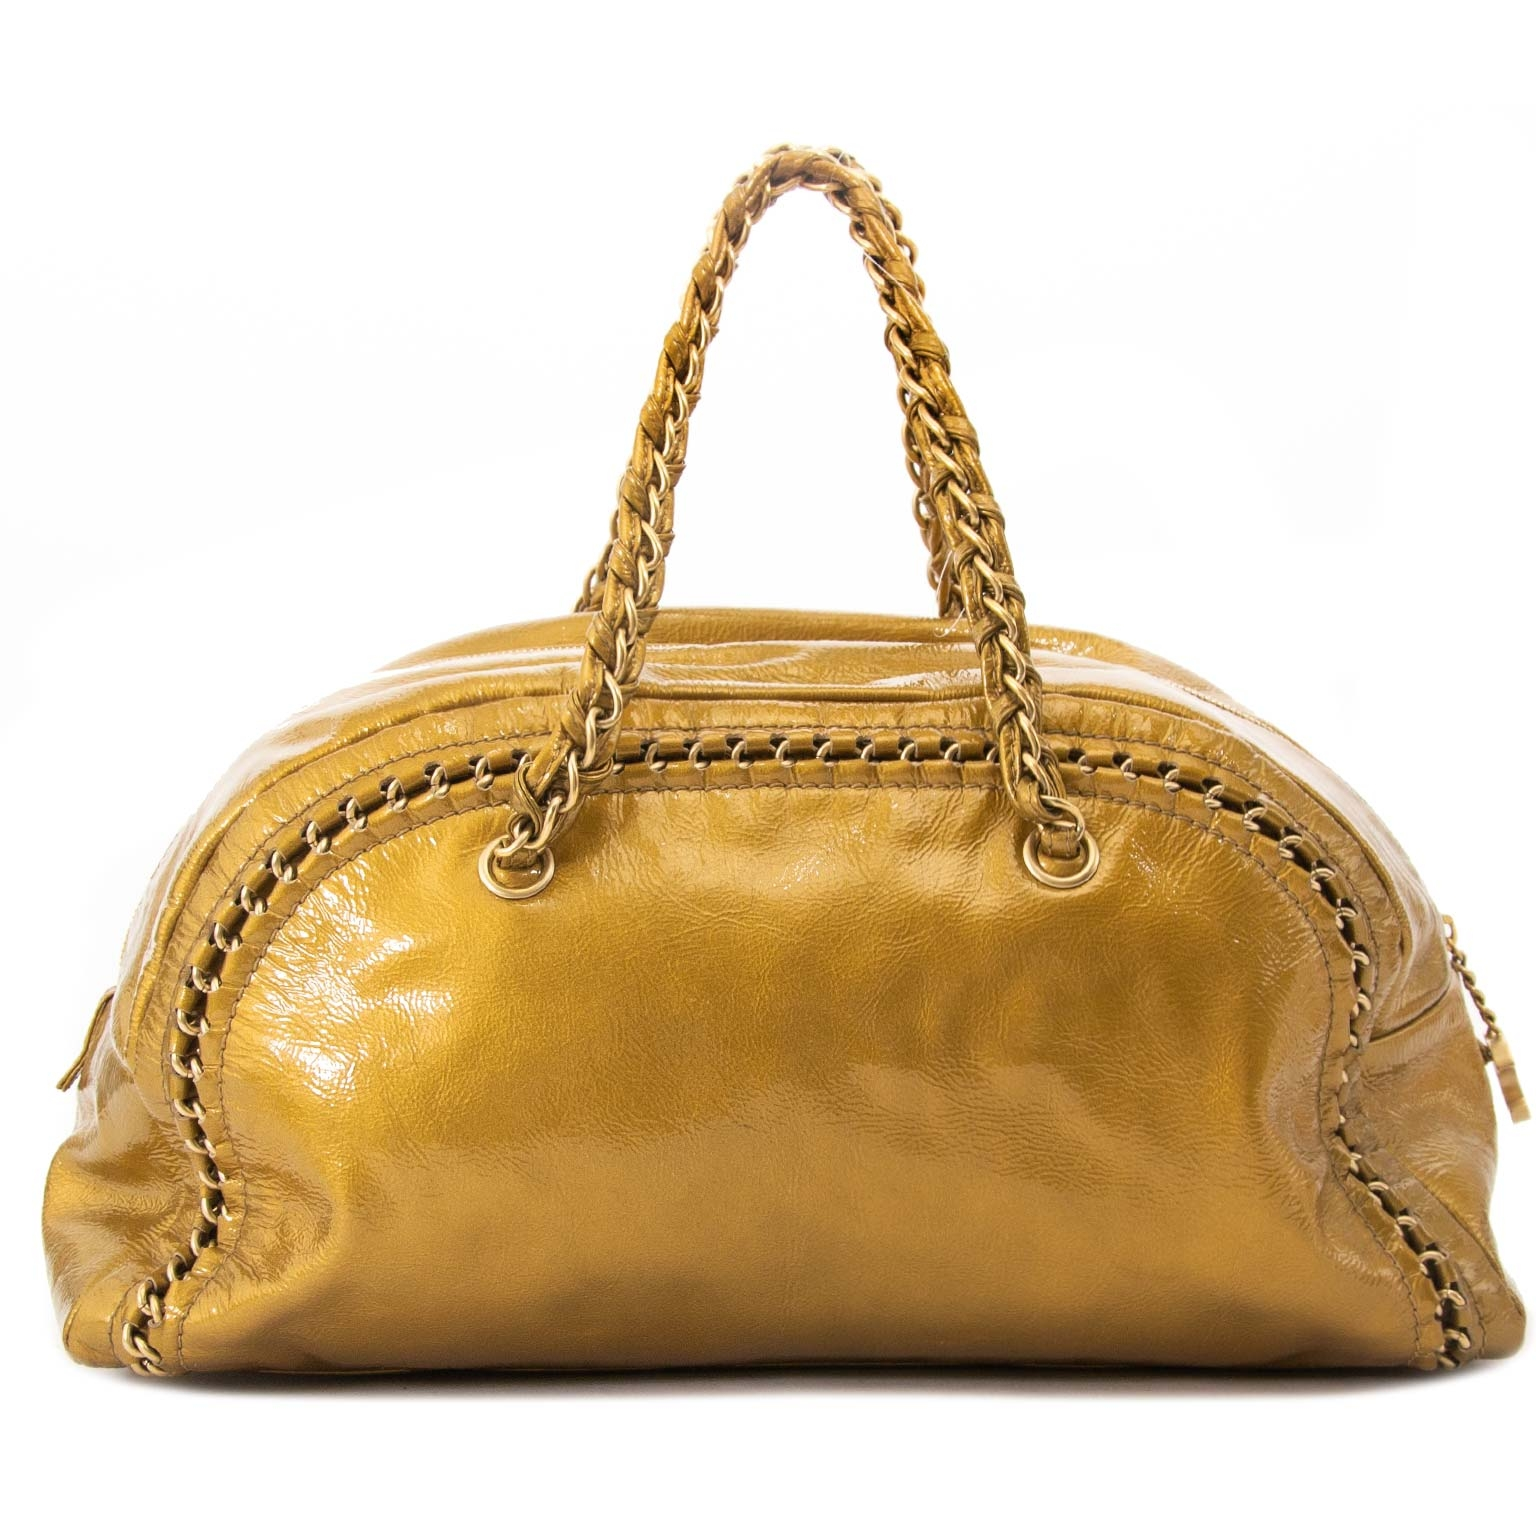 9709385c7d53 ... chanel gold patent leather bowling bag now for sale at labellov vintage  fashion webshop belgium